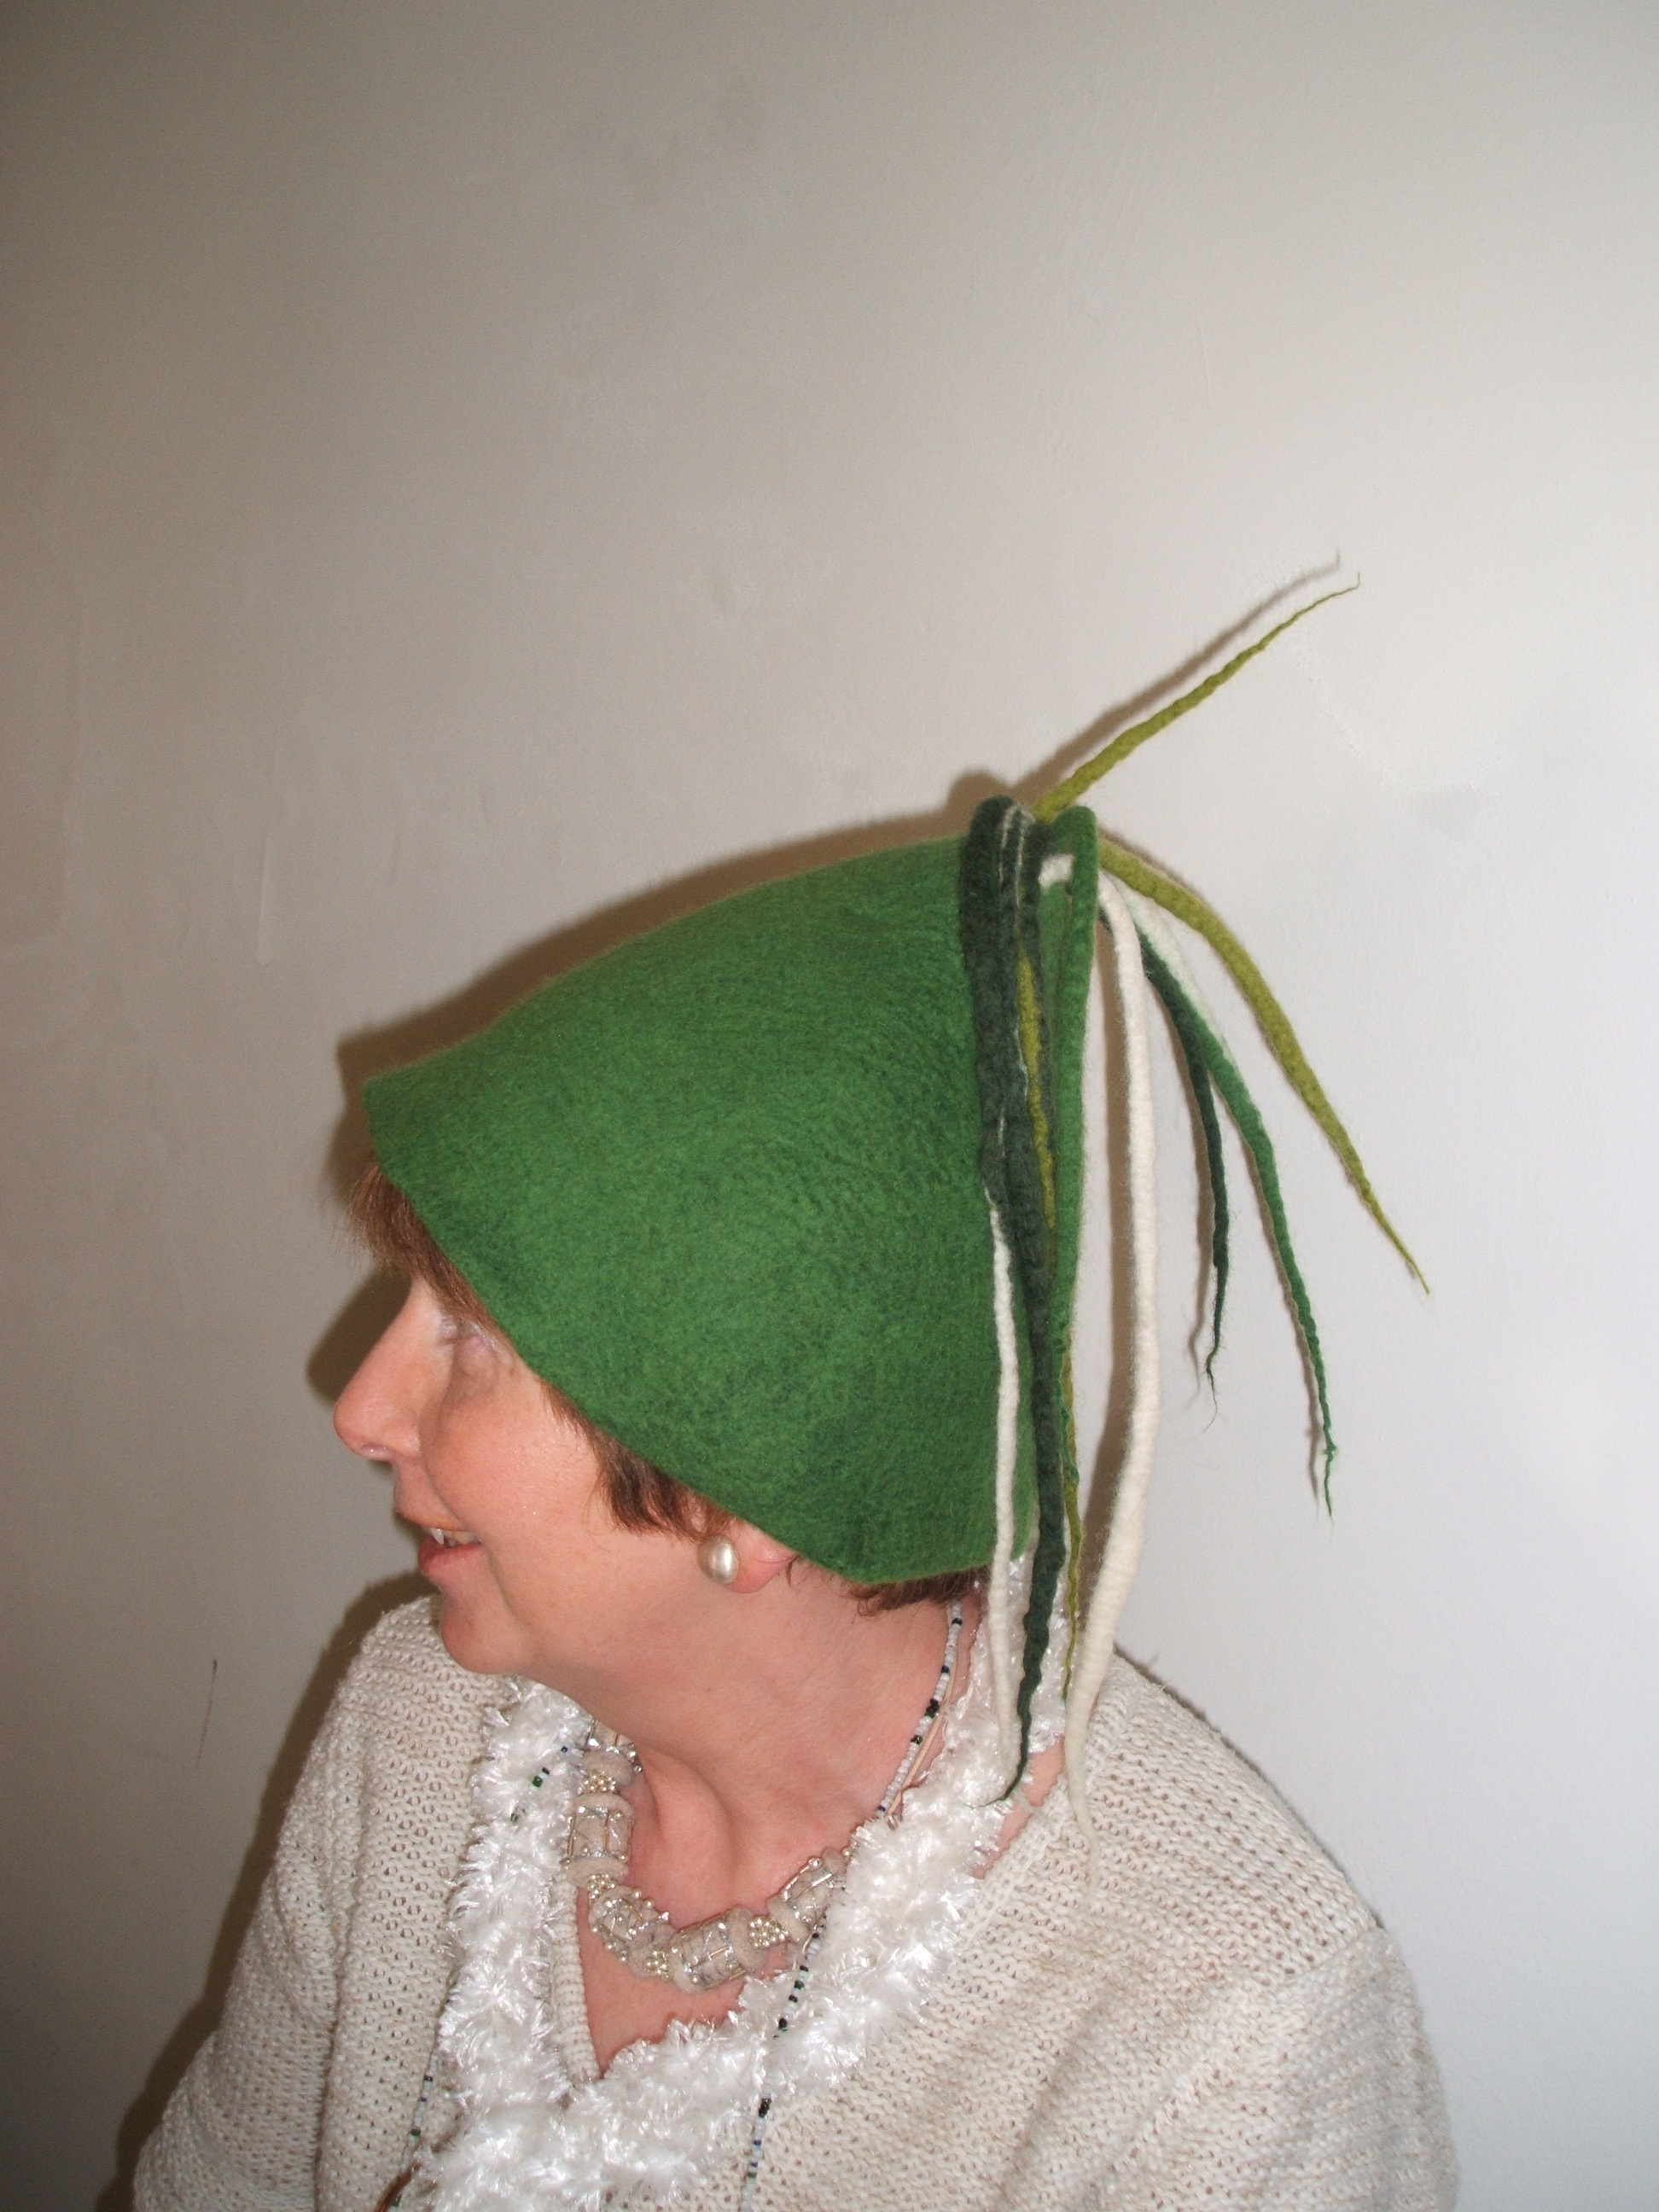 Clare modelling my hat!